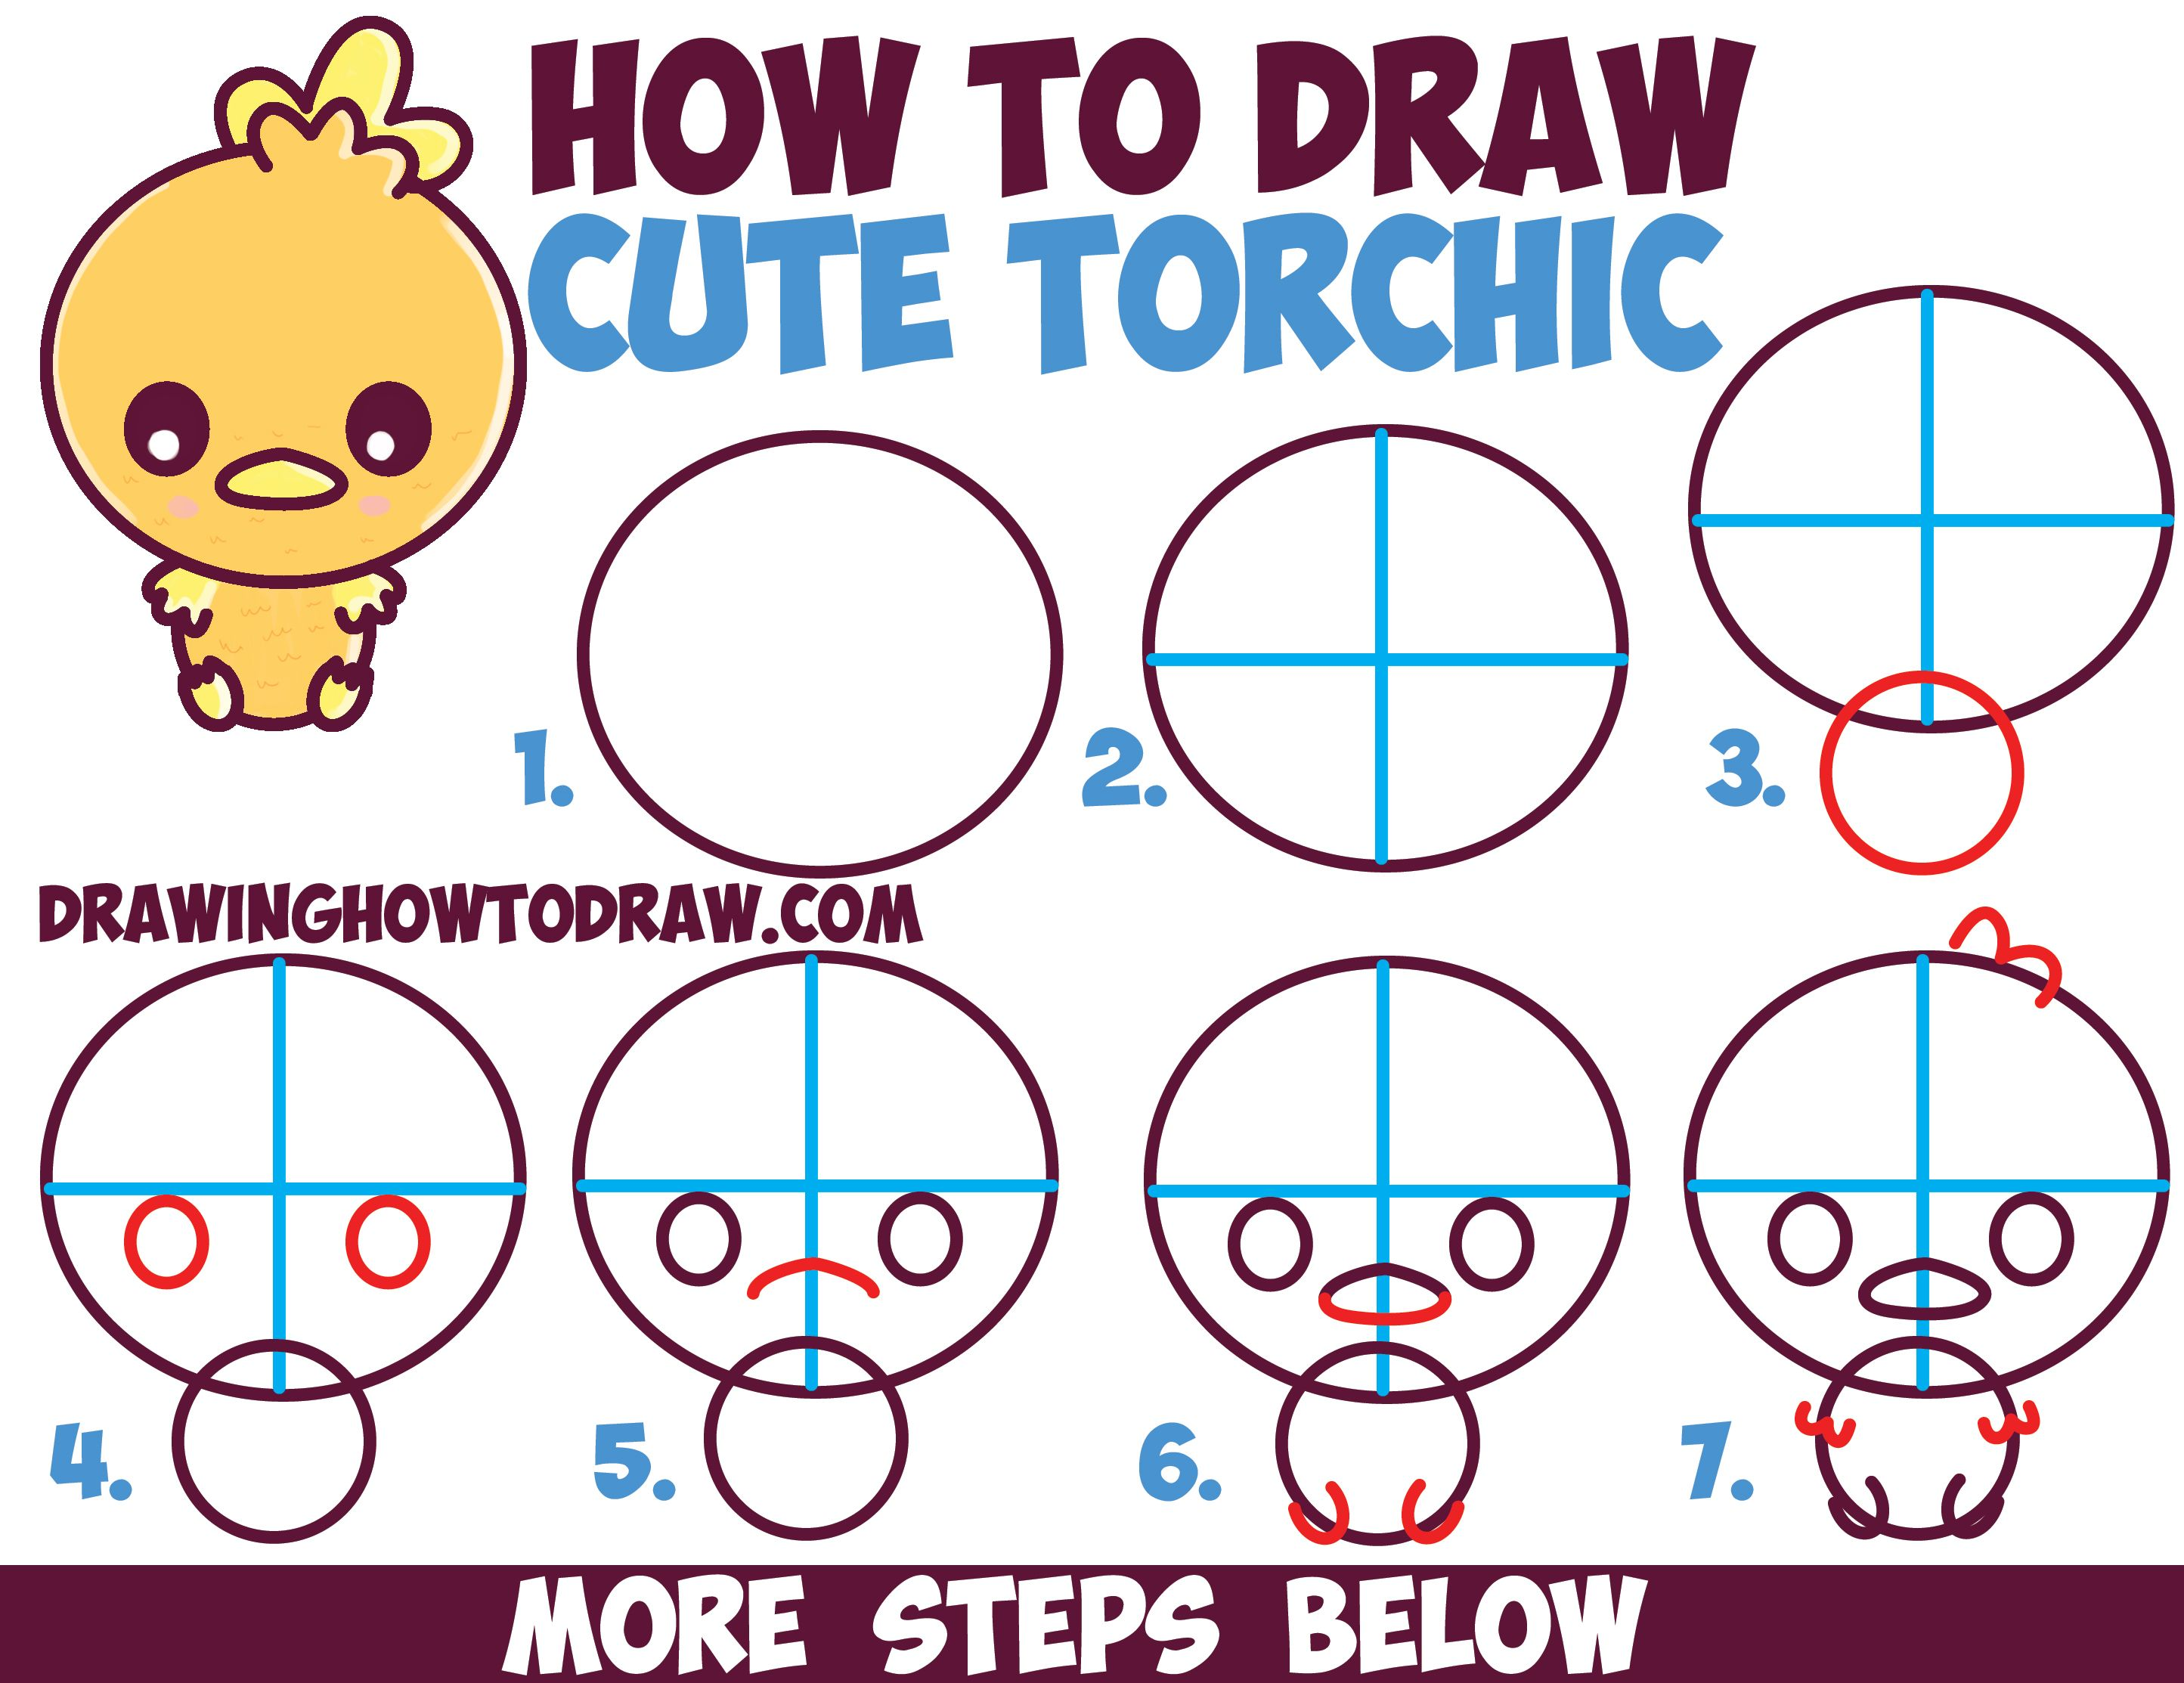 How To Draw Cute Torchic From Pokemon Chibi Kawaii Easy Steps Lesson For Kids